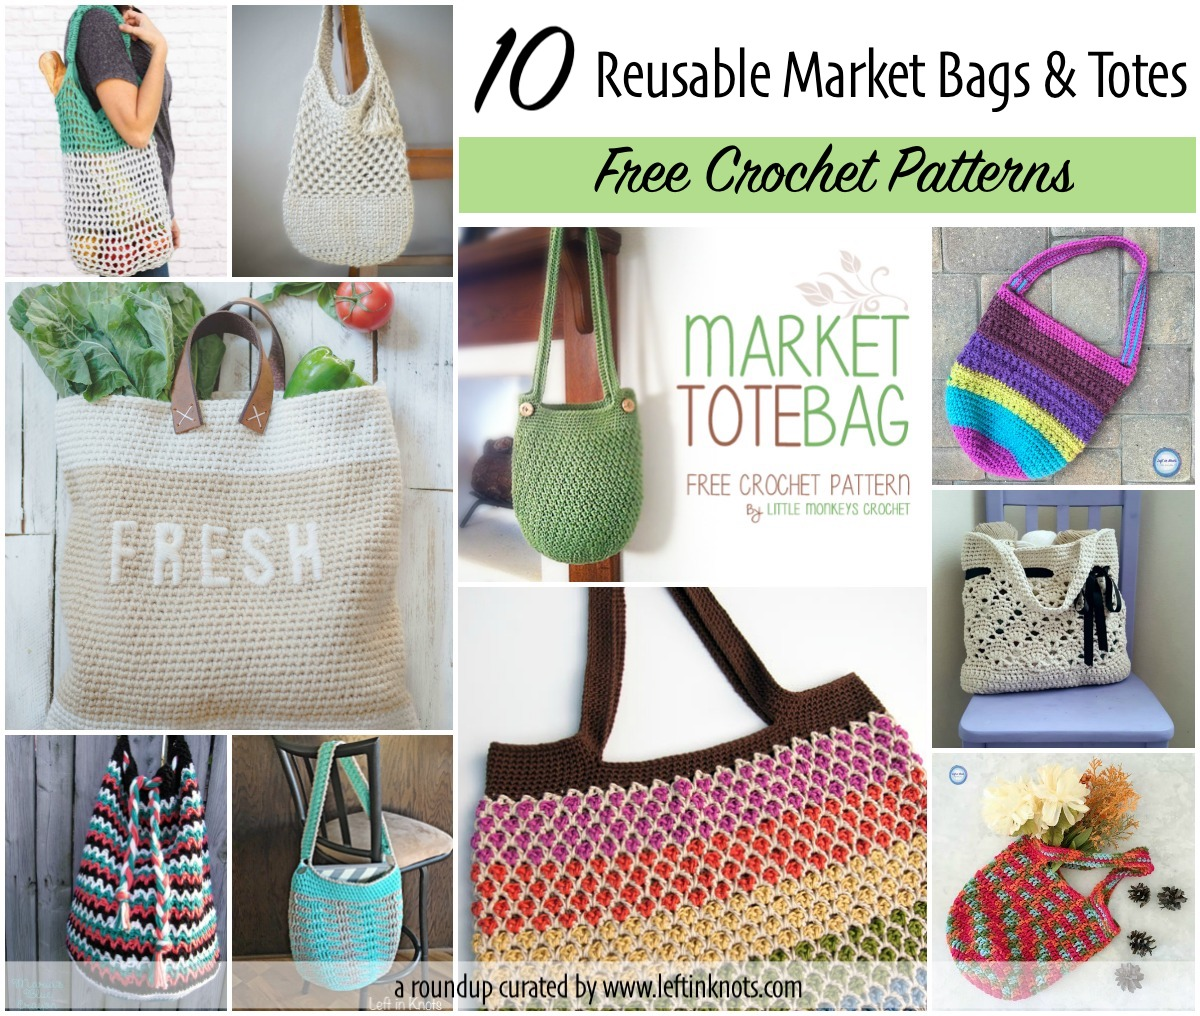 10 Free Crochet Patterns for Reusable Bags and Totes — Left in Knots